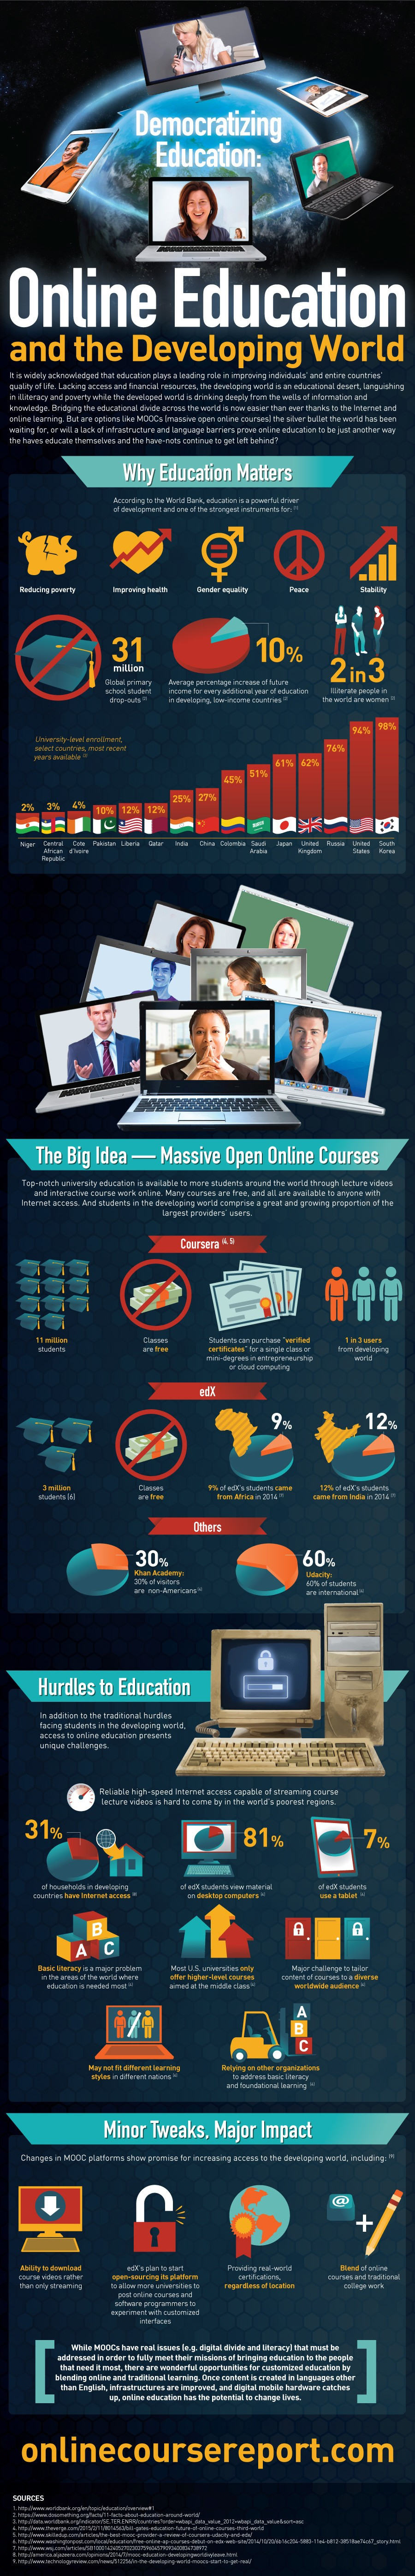 Online Education and the Developing World Infographic